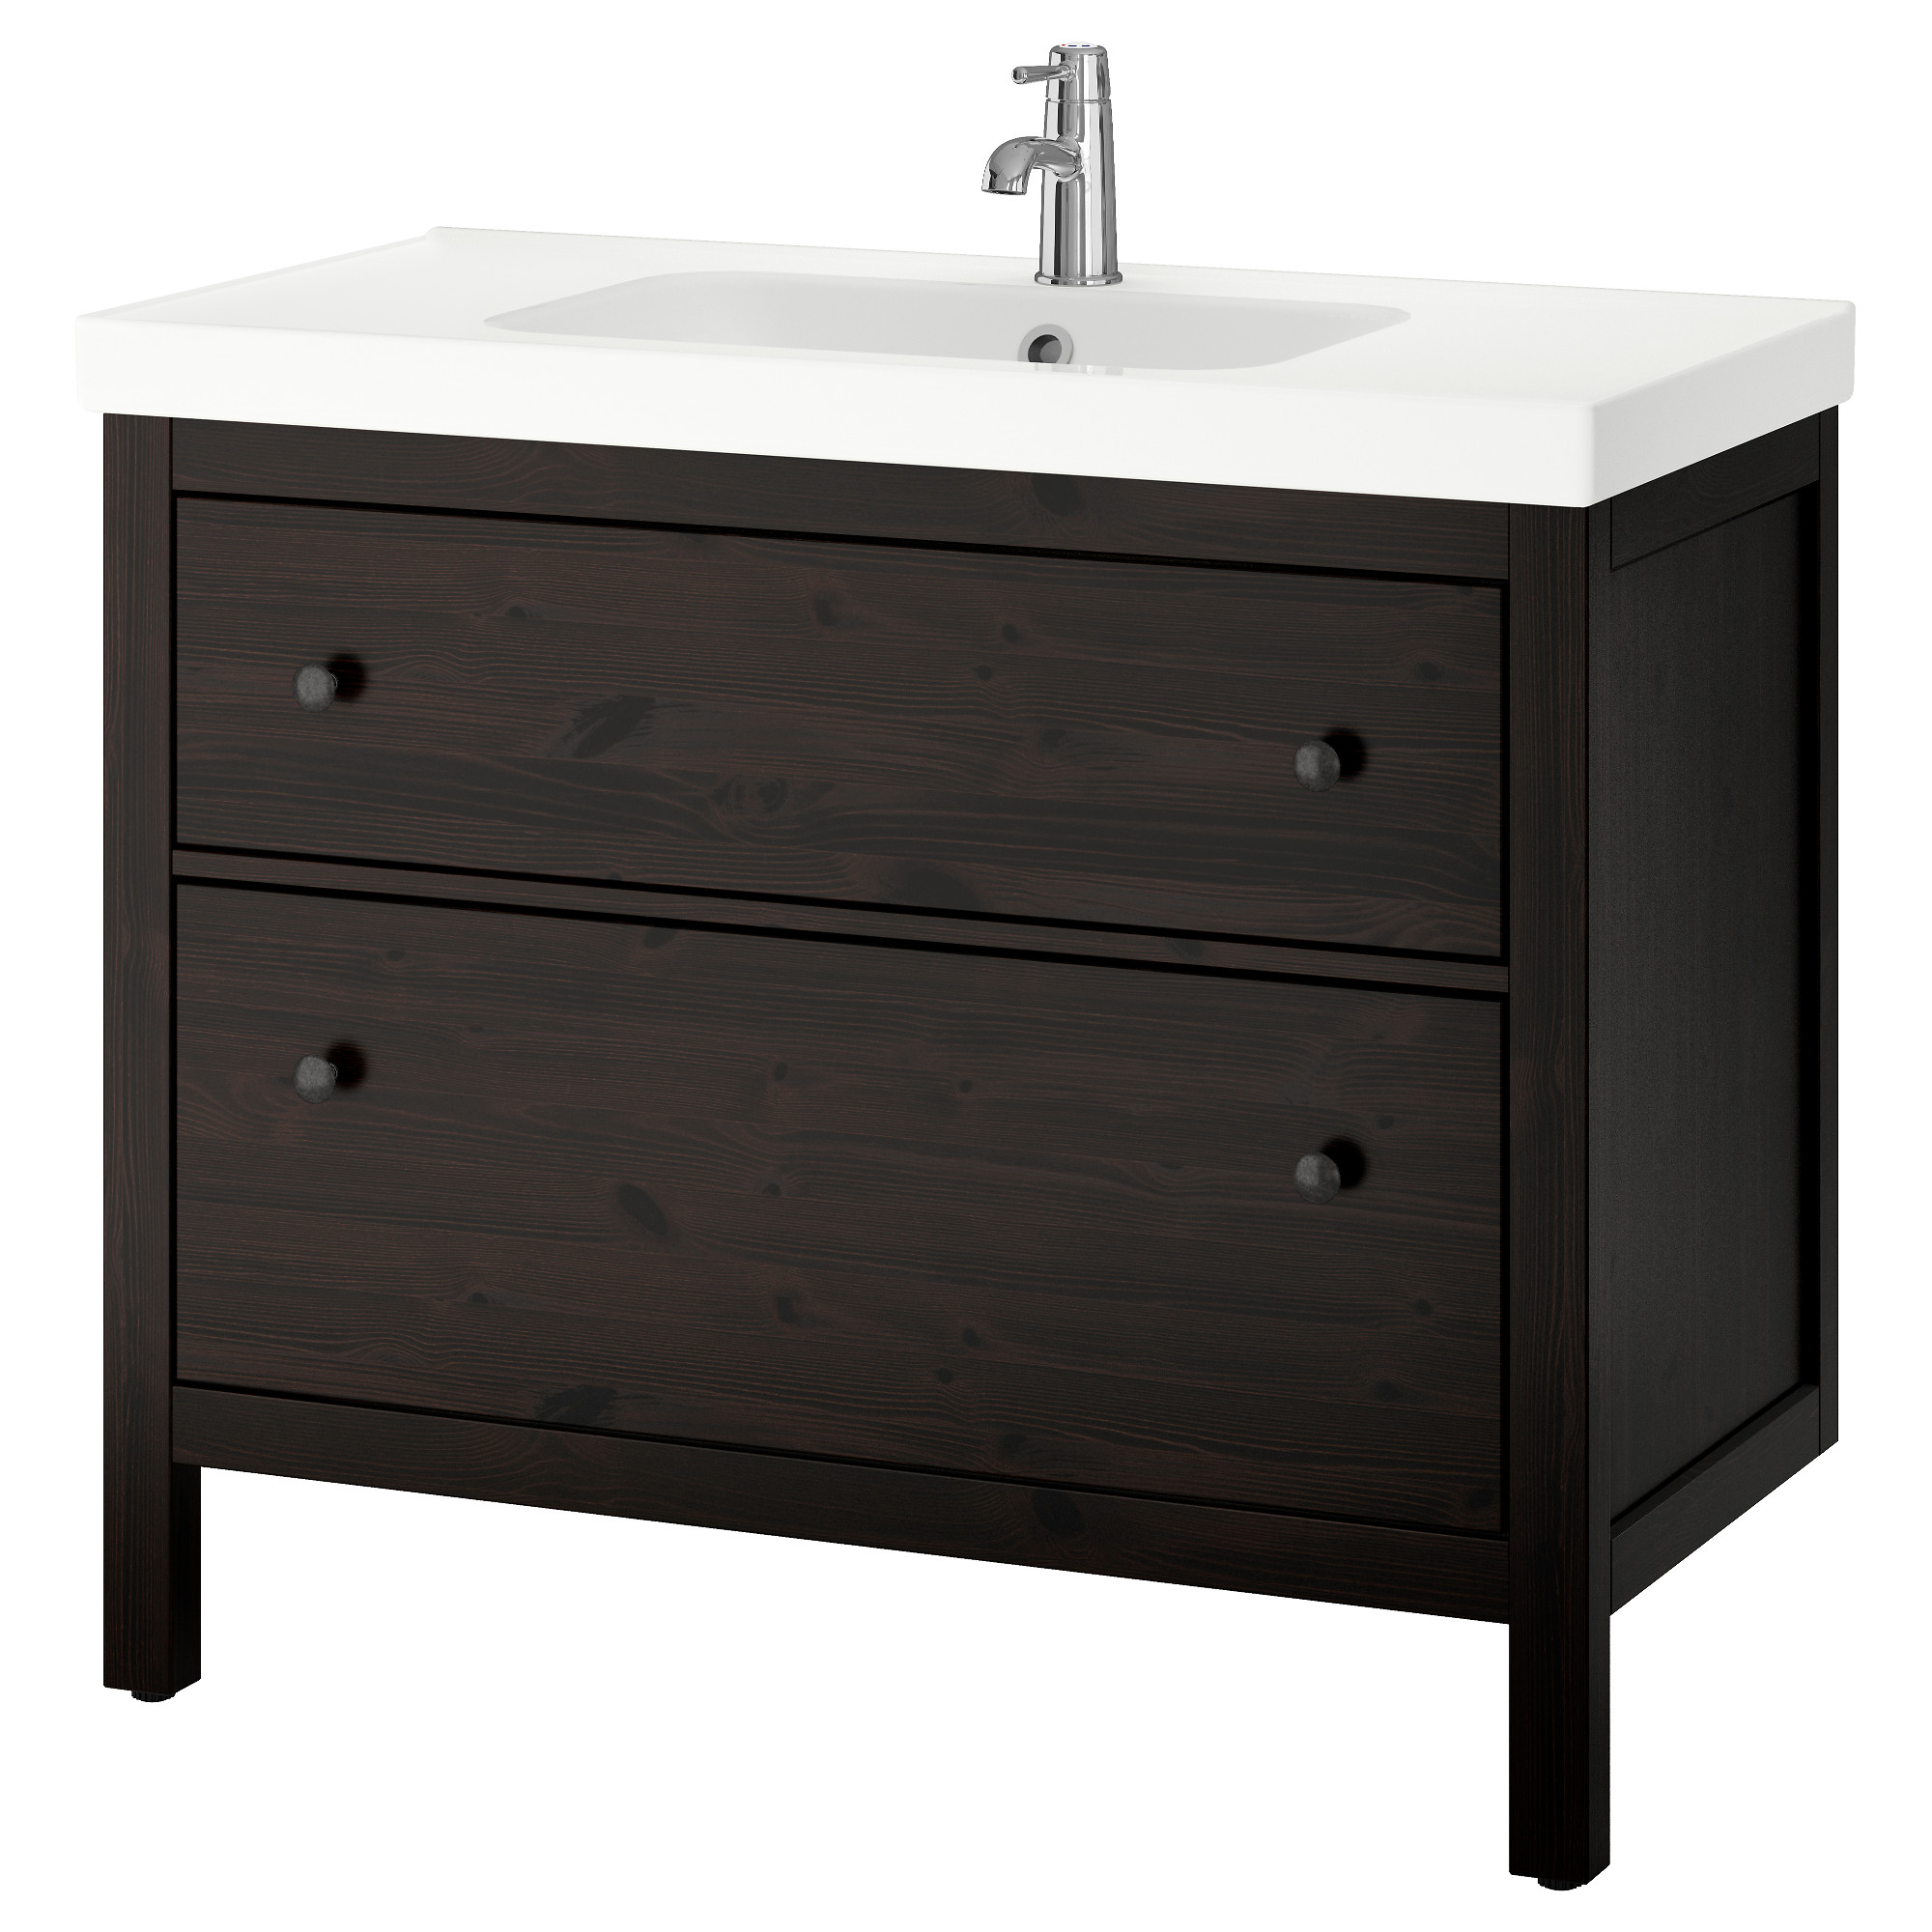 HEMNES ODENSVIK Sink cabinet with 2 drawers black brown stain IKEA